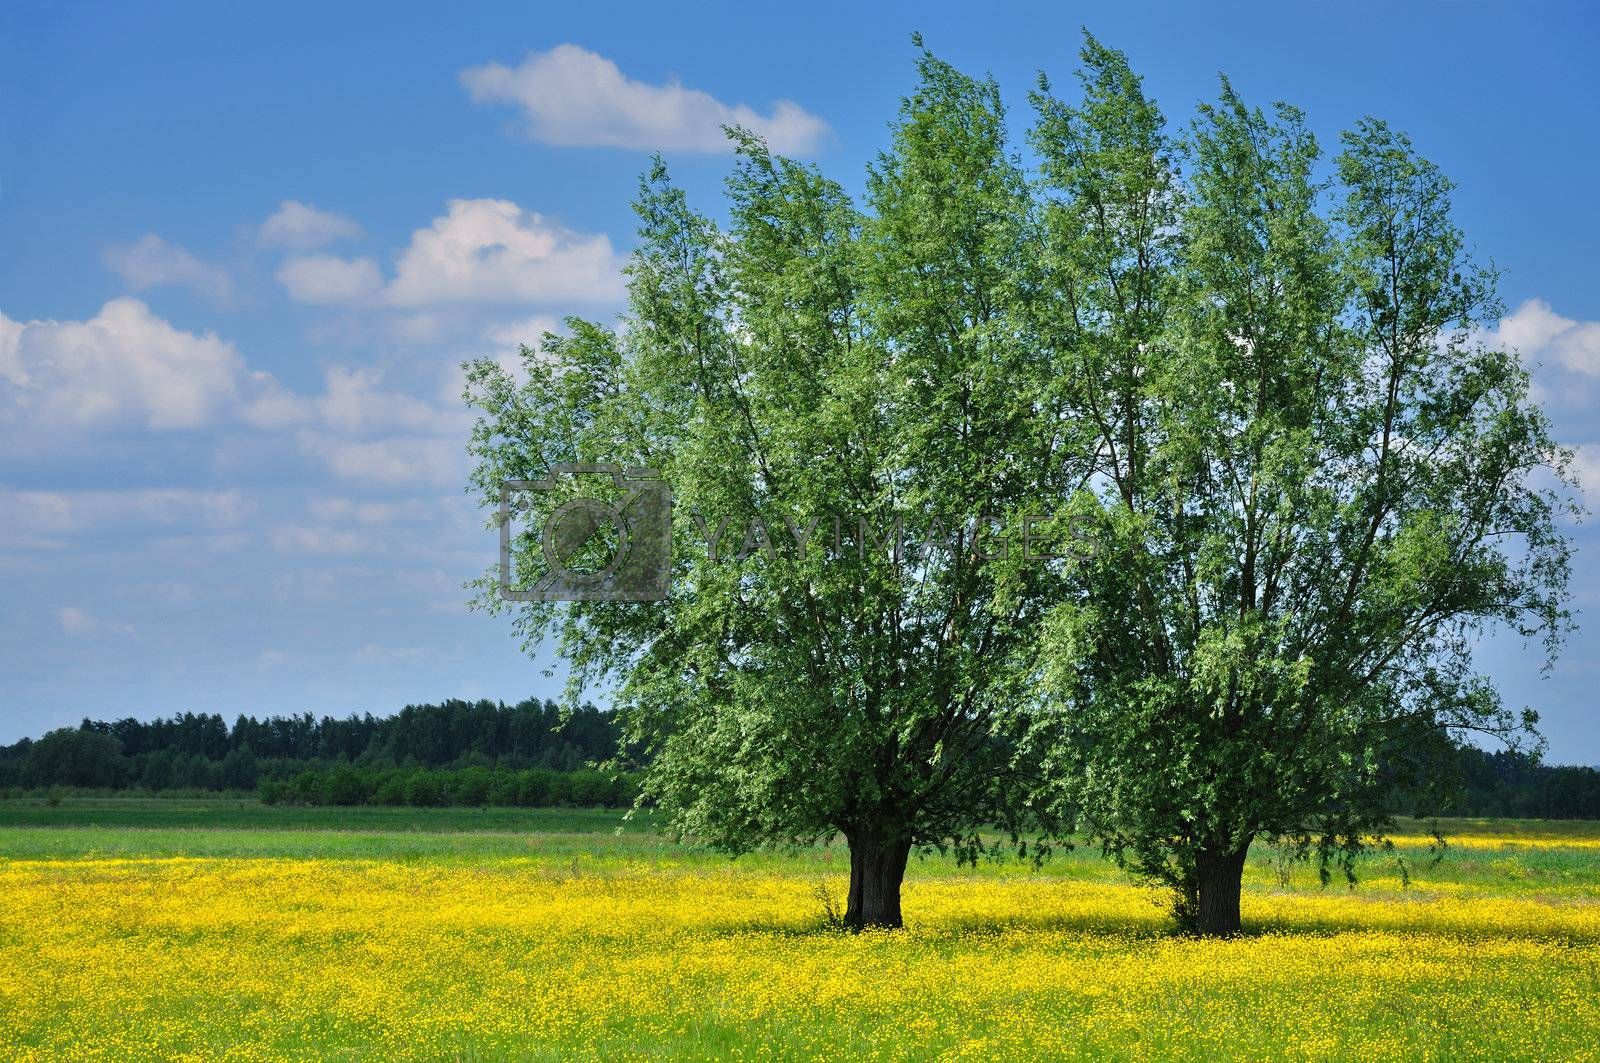 Two trees and yellow flowers against blue sky